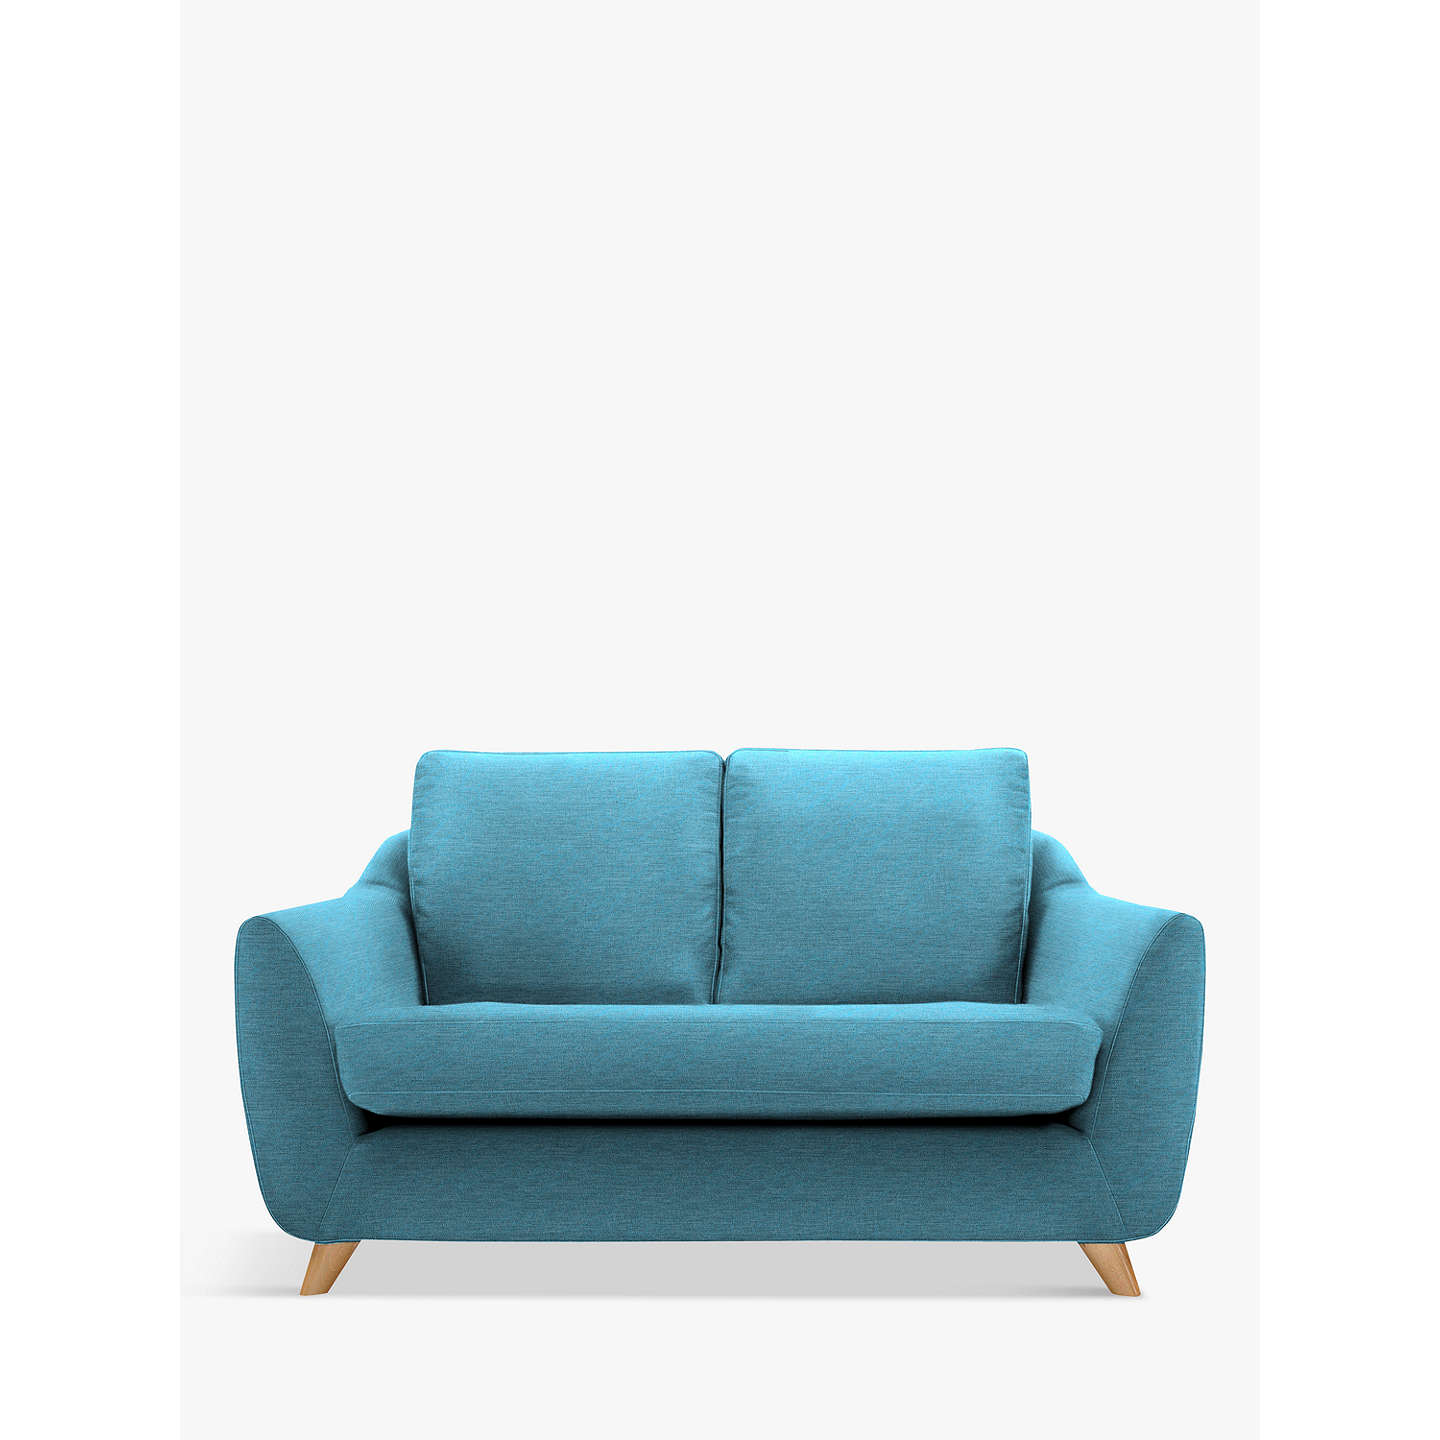 BuyG Plan Vintage The Sixty Seven Small 2 Seater Sofa, Fleck Blue Online at johnlewis.com